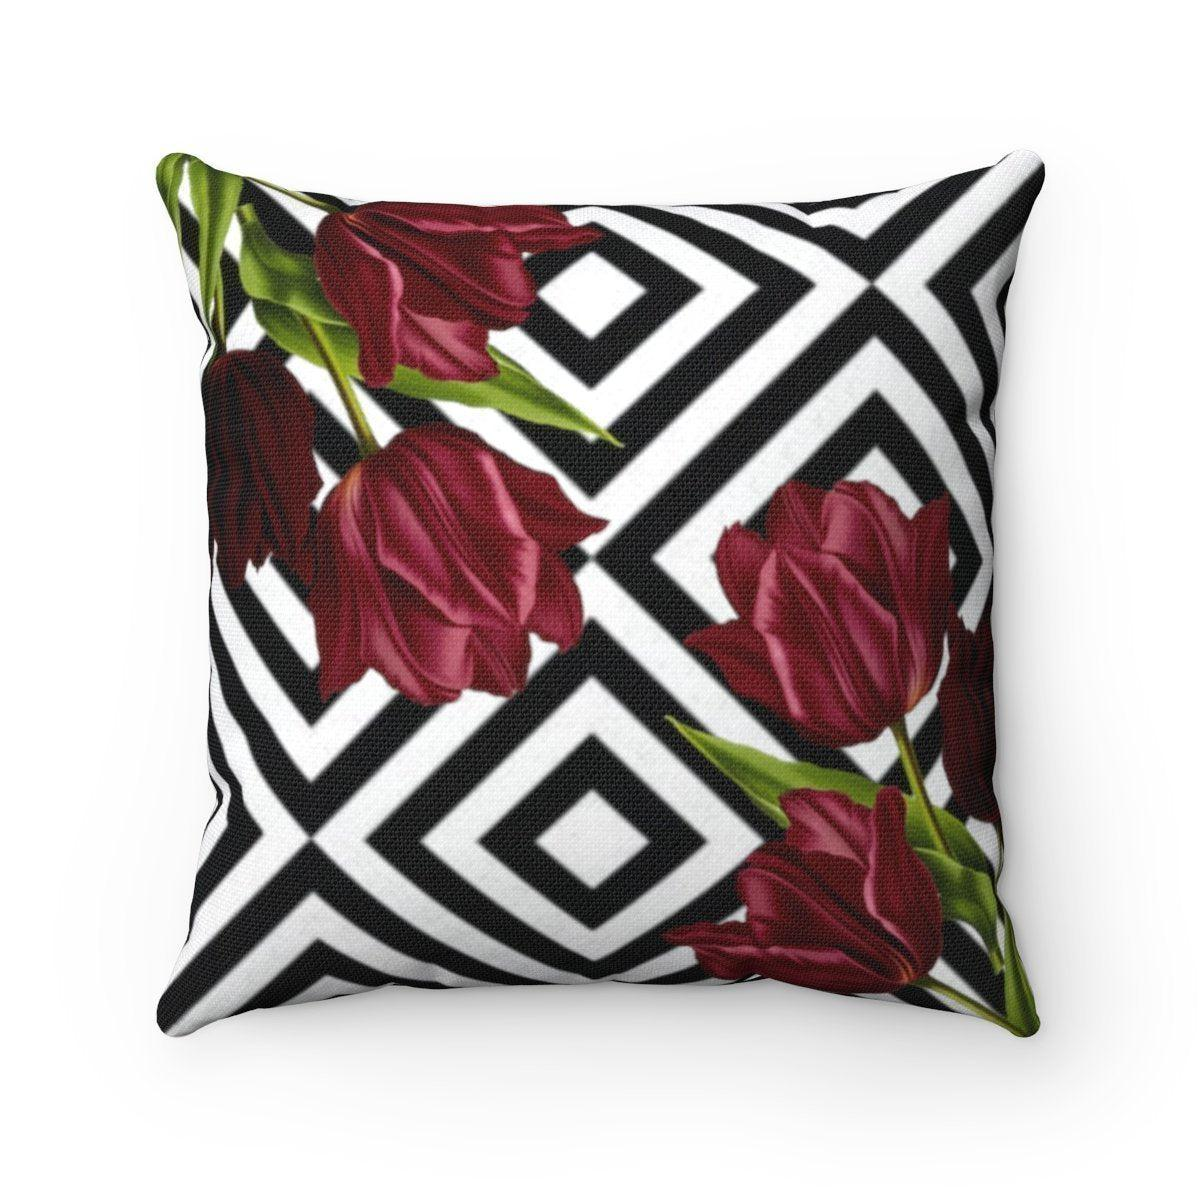 Luxury Tulips | Floral abstract decorative cushion cover-Home Decor - Decorative Accents - Pillows & Throws - Decorative Pillows-Maison d'Elite-14x14-Très Elite